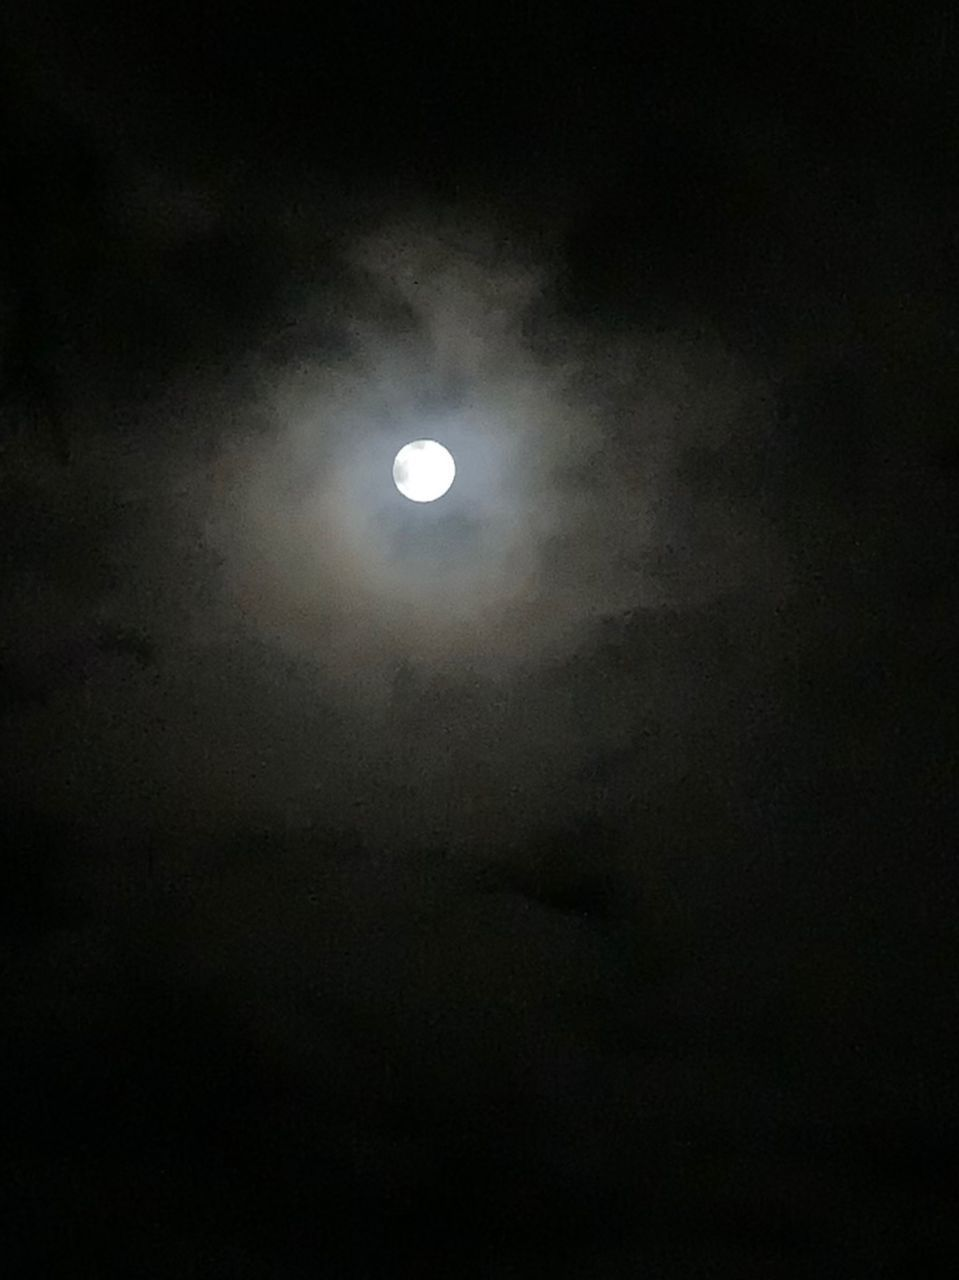 LOW ANGLE VIEW OF MOON IN THE DARK SKY